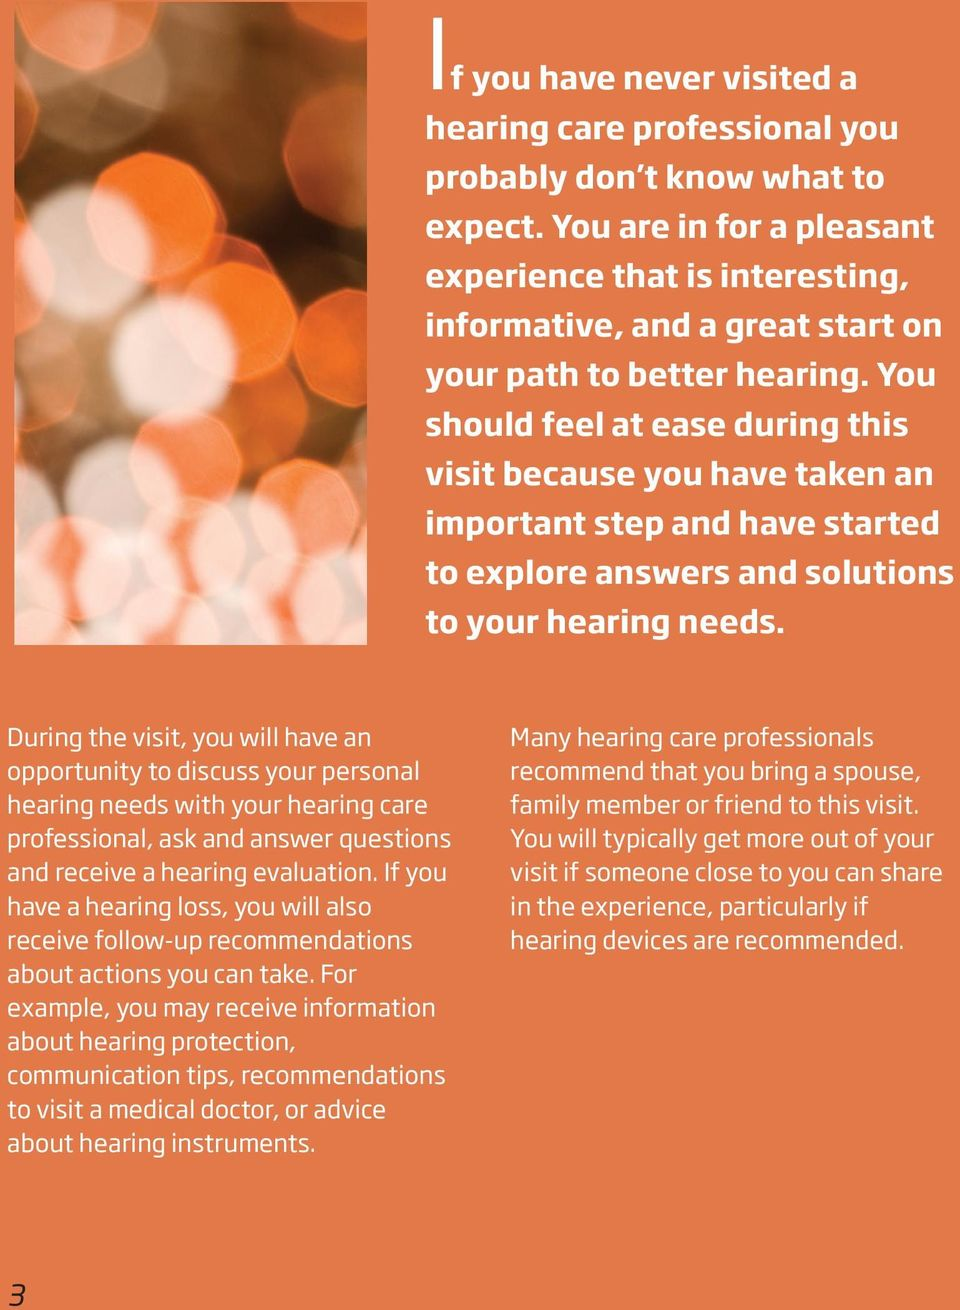 You should feel at ease during this visit because you have taken an important step and have started to explore answers and solutions to your hearing needs.